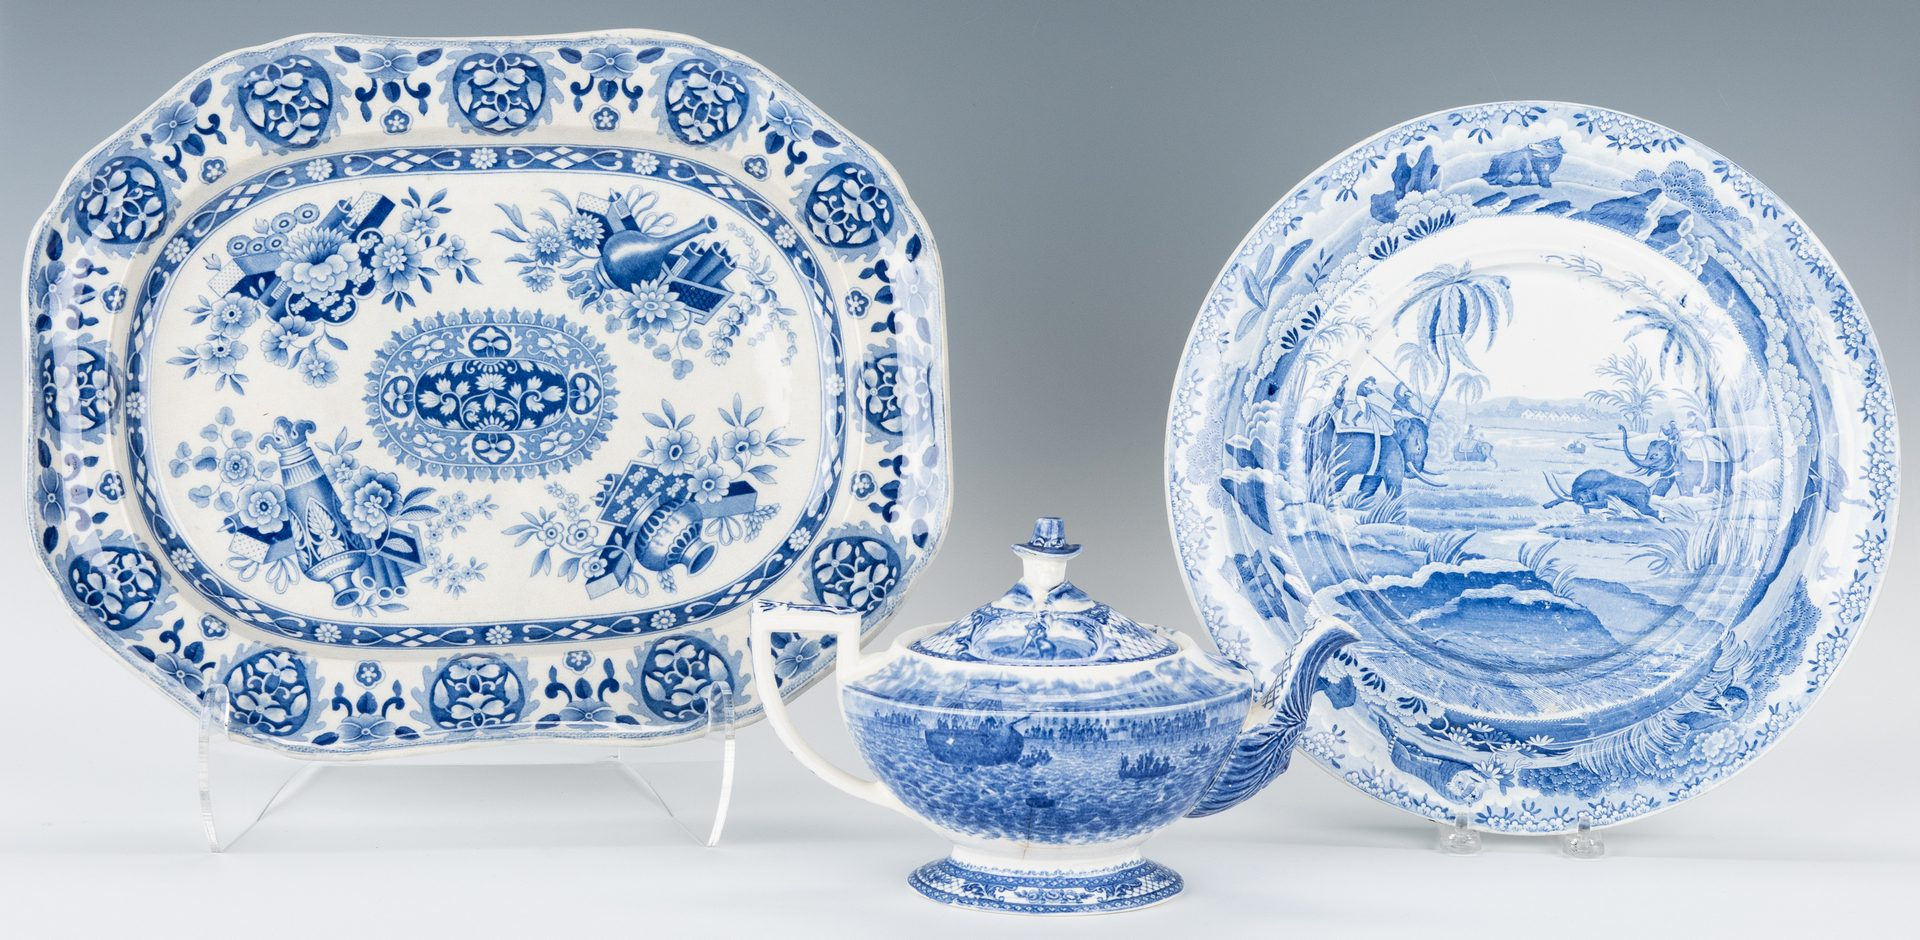 Lot 251: 3 Blue & White English Transferware Items